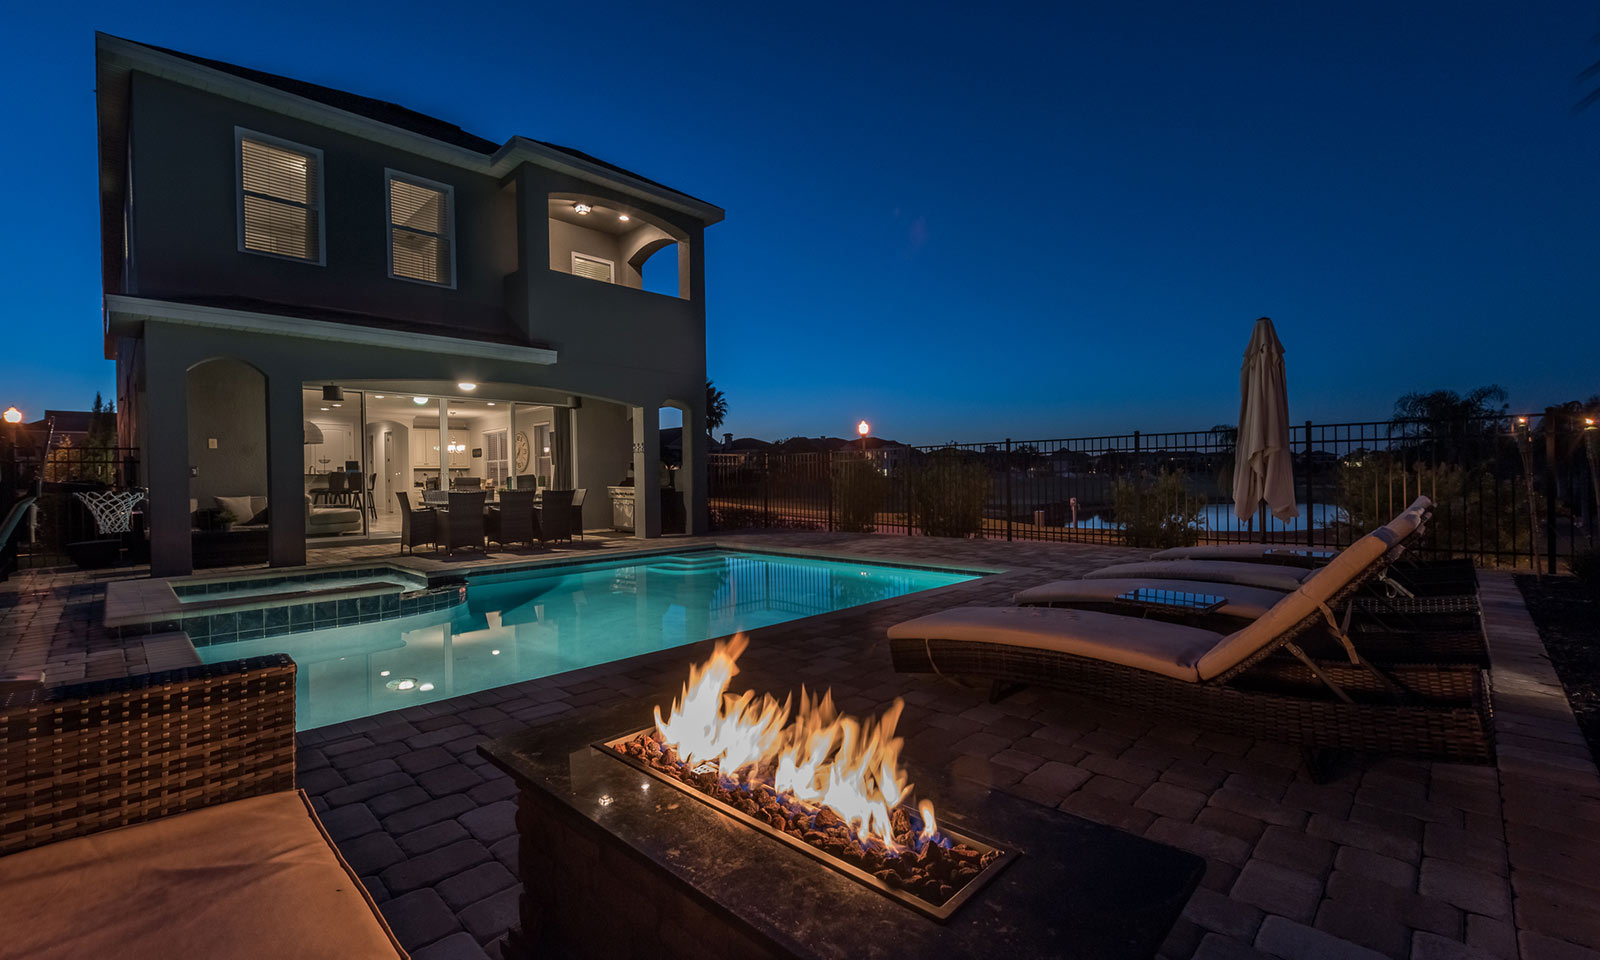 [amenities:Fire-Pit:3] Fire Pit